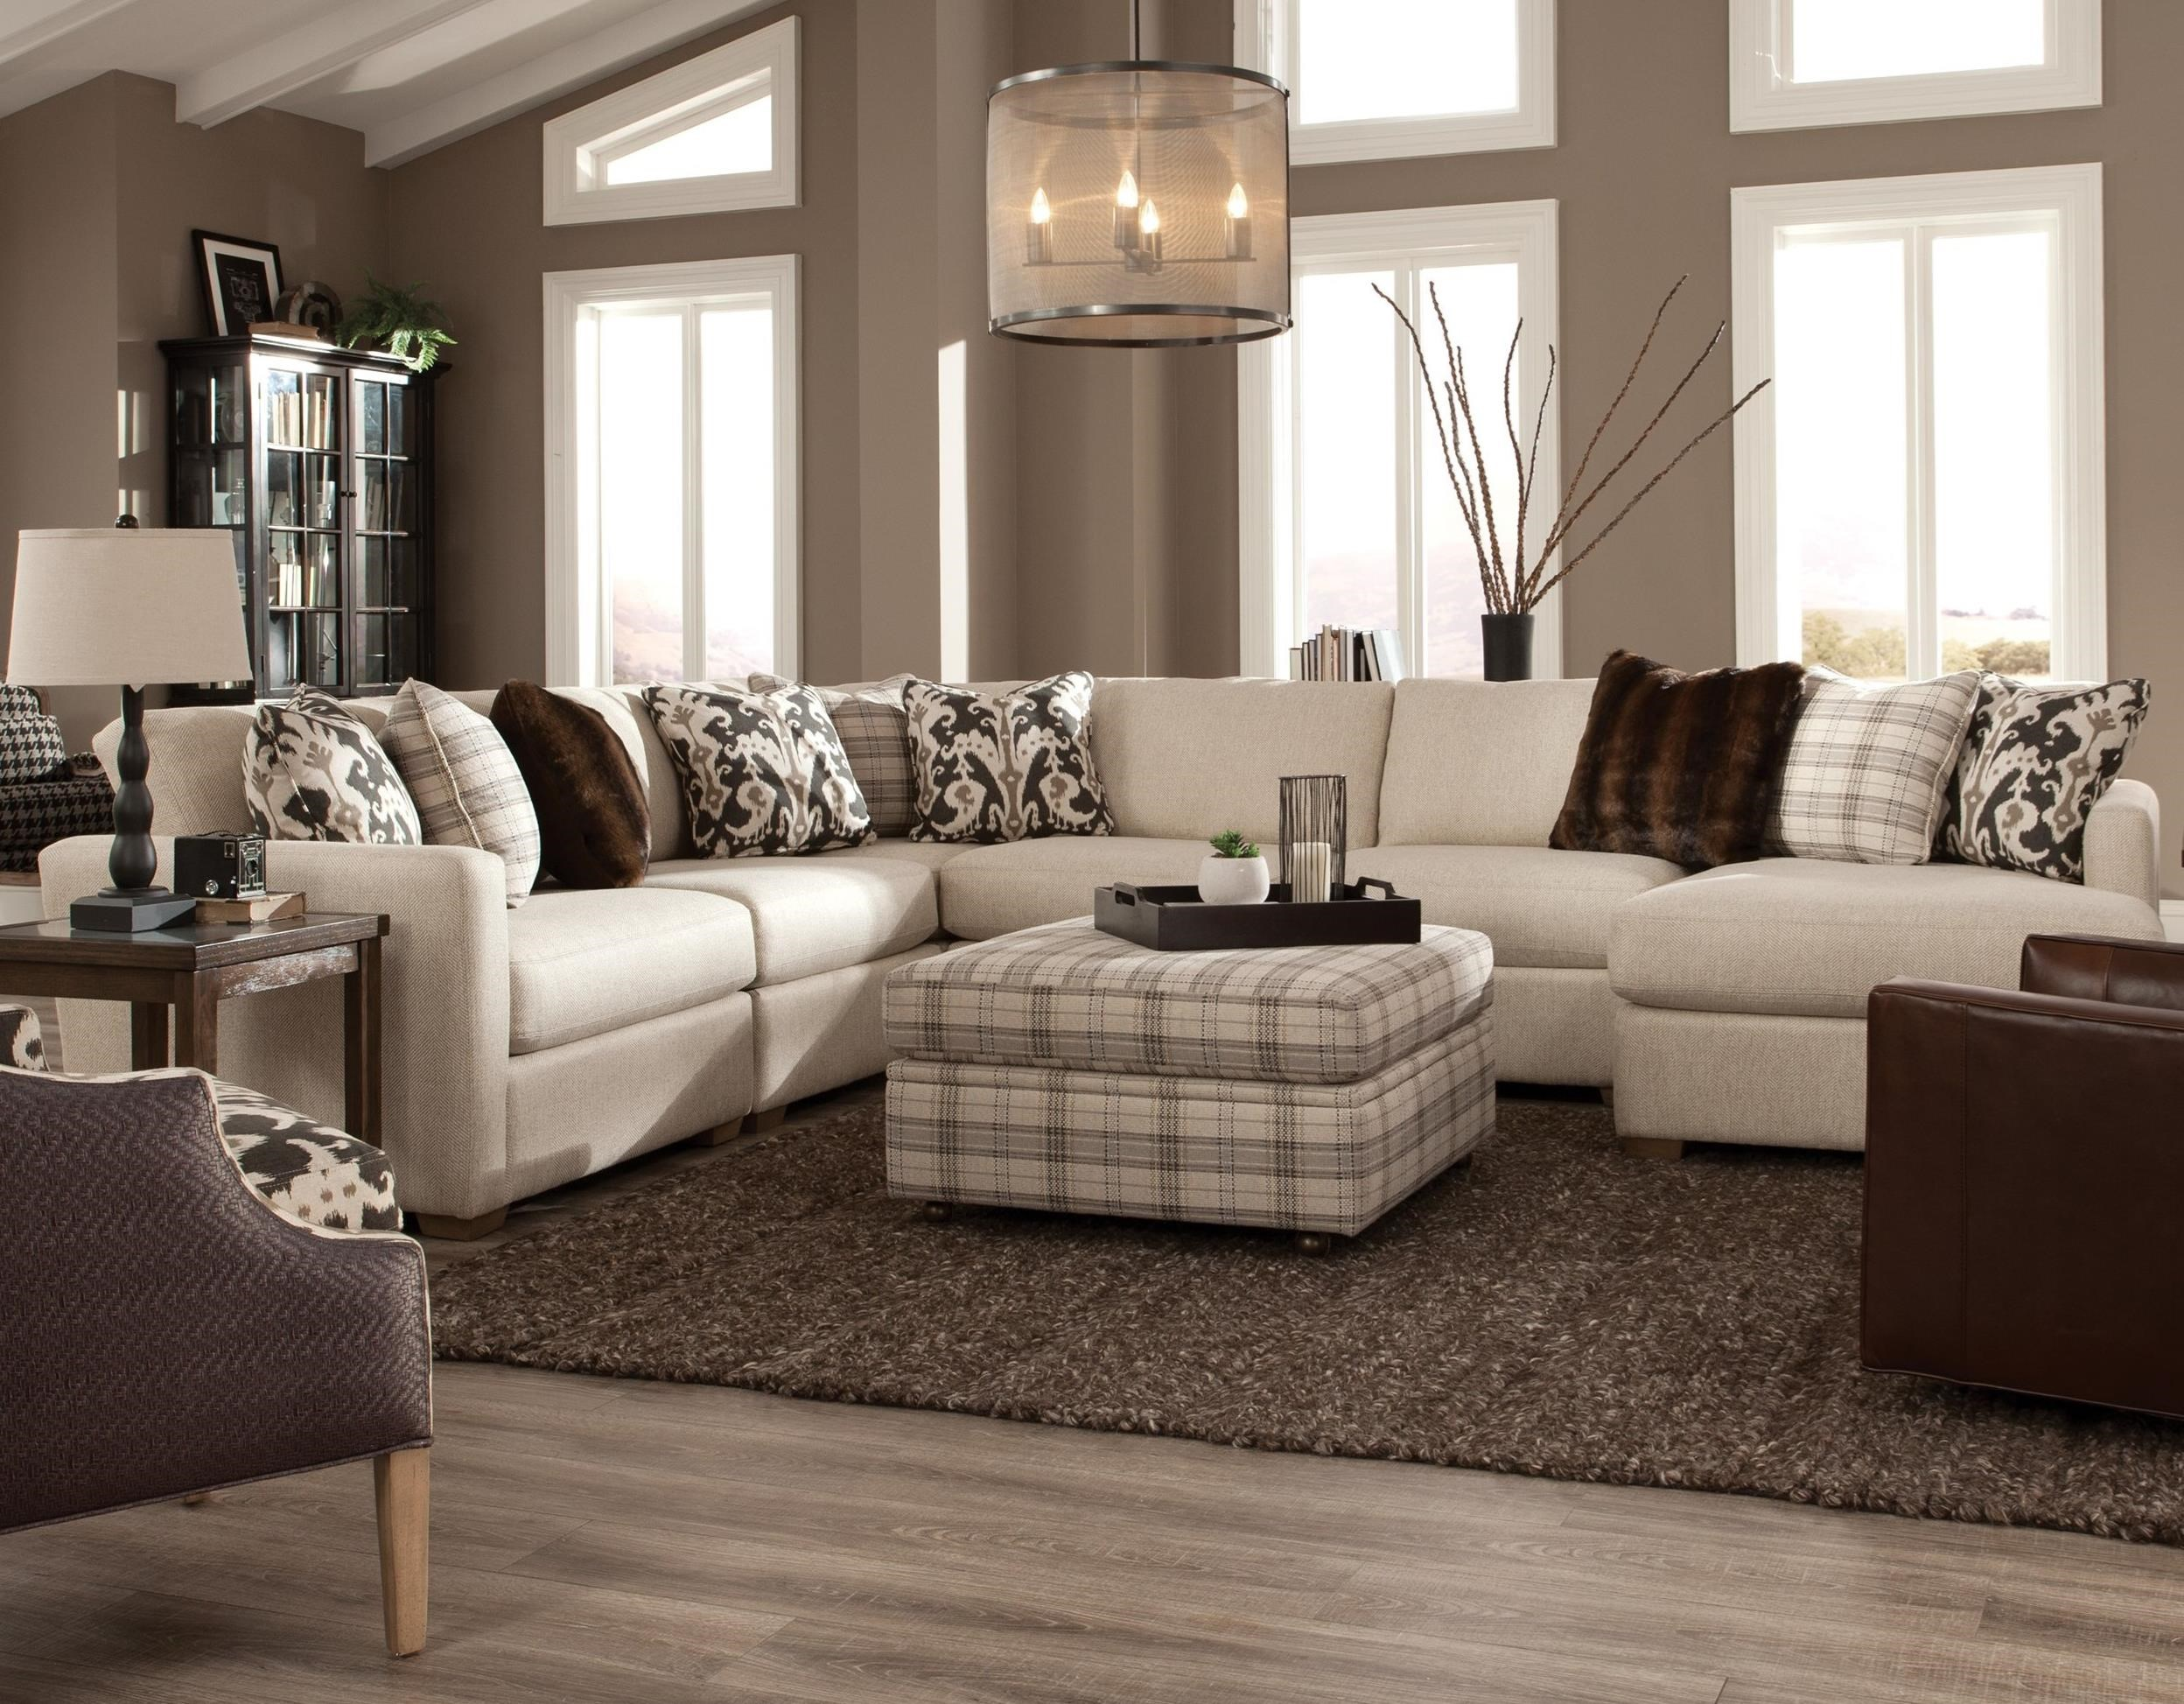 751100 5 Pc Sectional w/ RAF Chaise by Craftmaster at Esprit Decor Home Furnishings